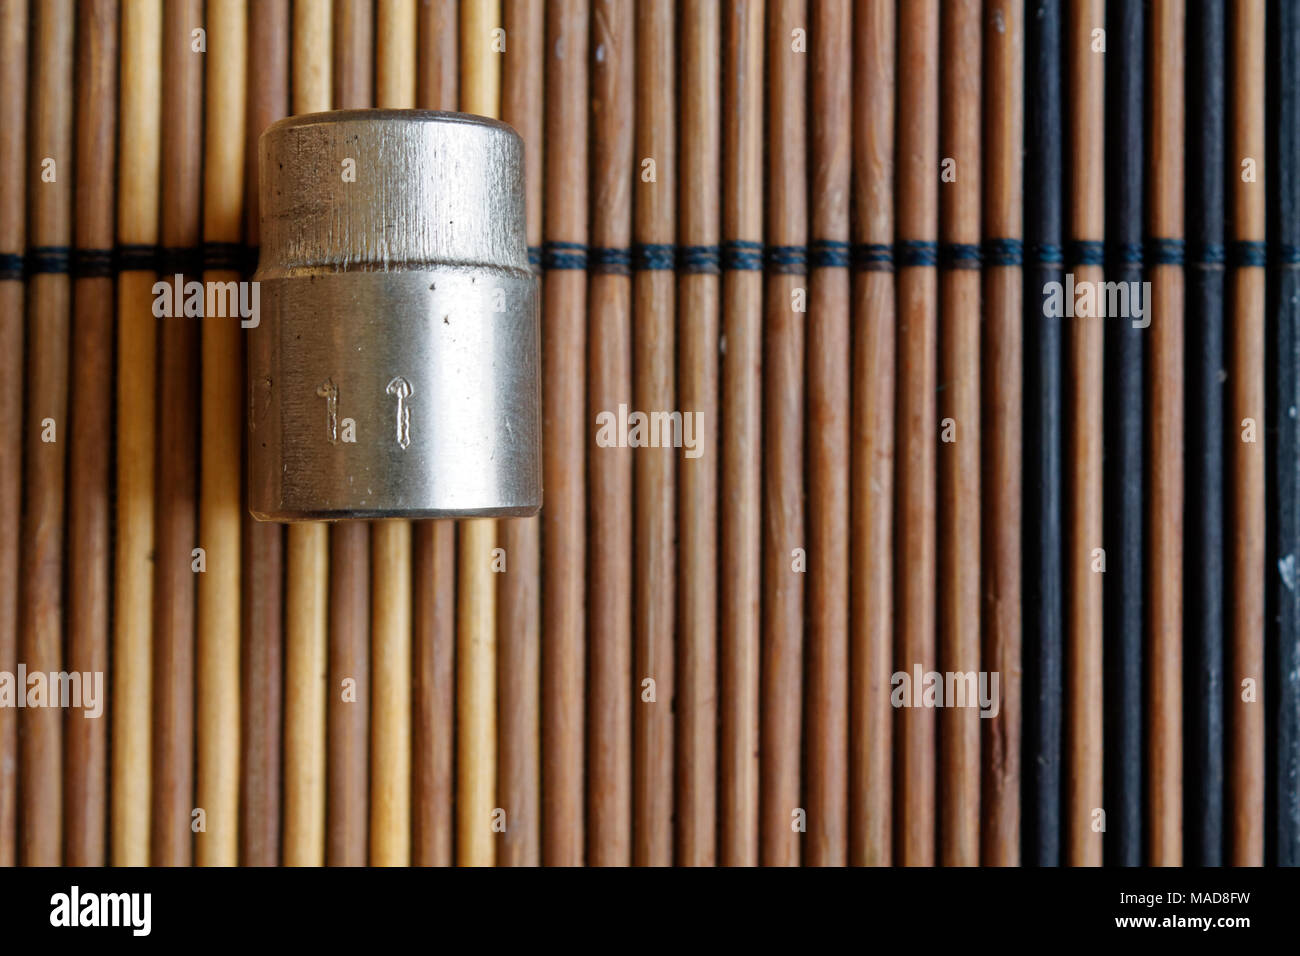 Torx Socket for spanner on wooden background, wrench sockets size is 11 - Stock Image